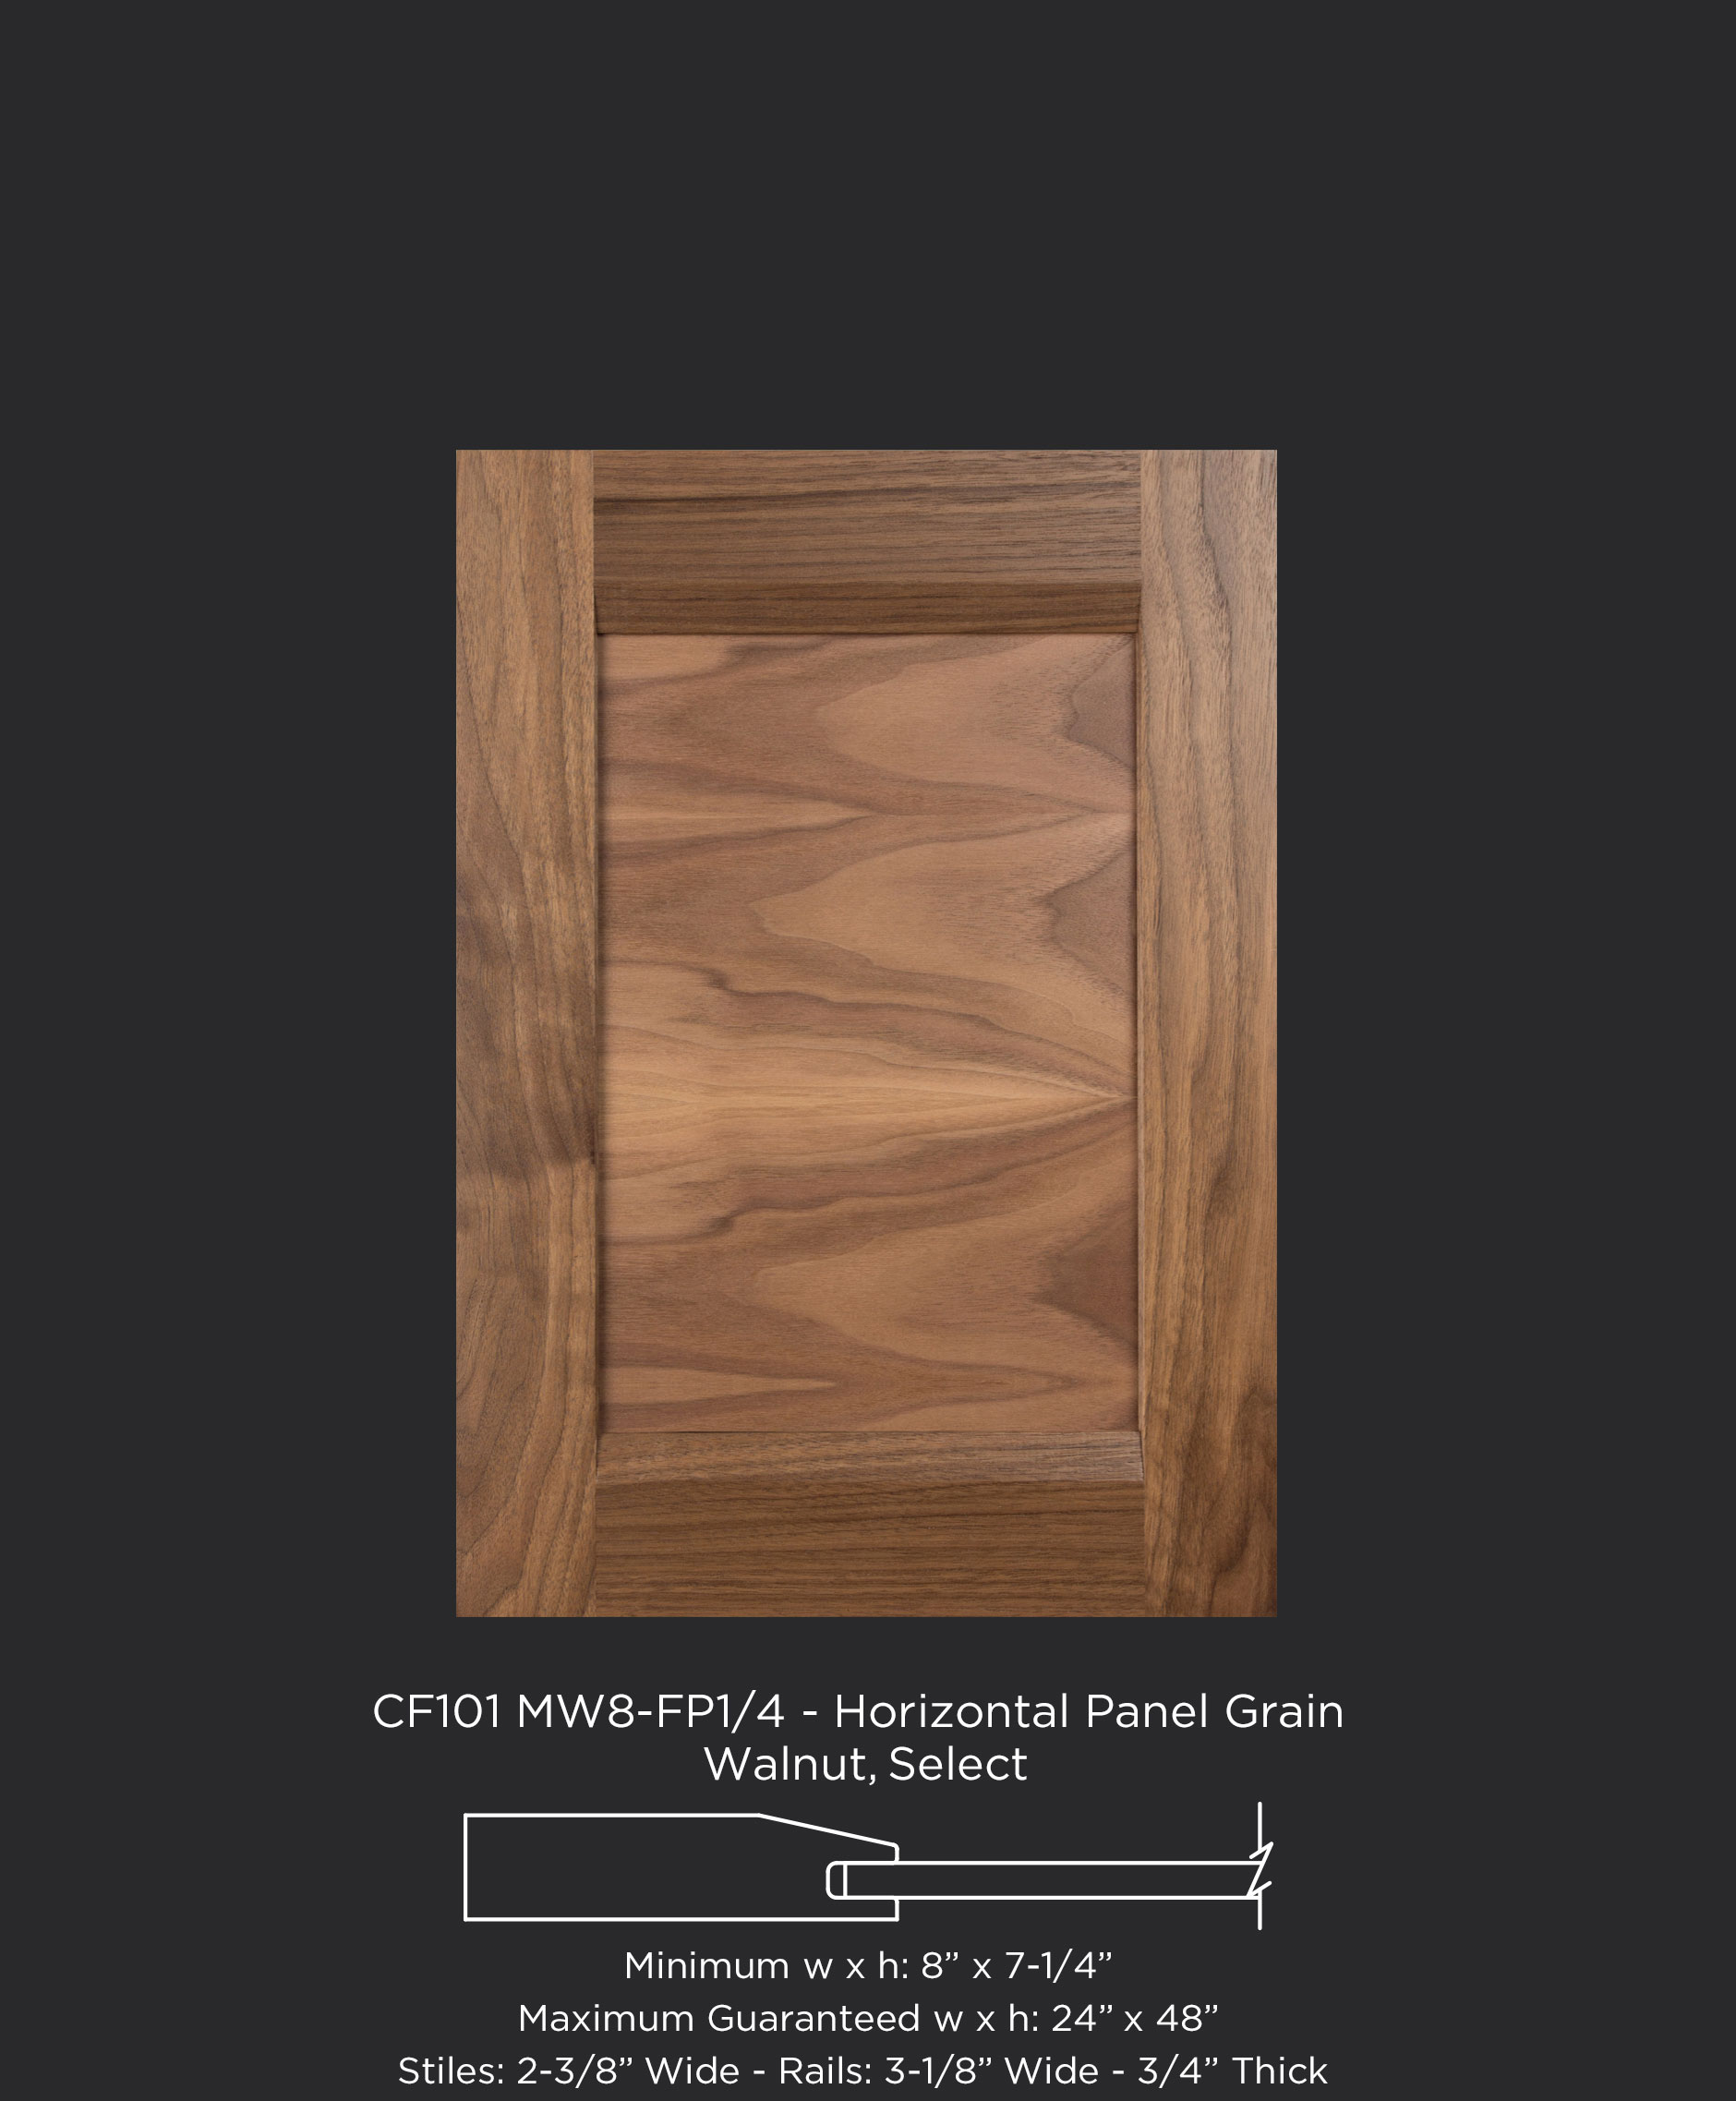 View Larger Image Combination Frame Cabinet Door CF101 MW8-FP1/4 with horizontal panel grain in Walnut & CF101 MW8-FP1/4 Walnut Select Horizontal Grain - TaylorCraft ...